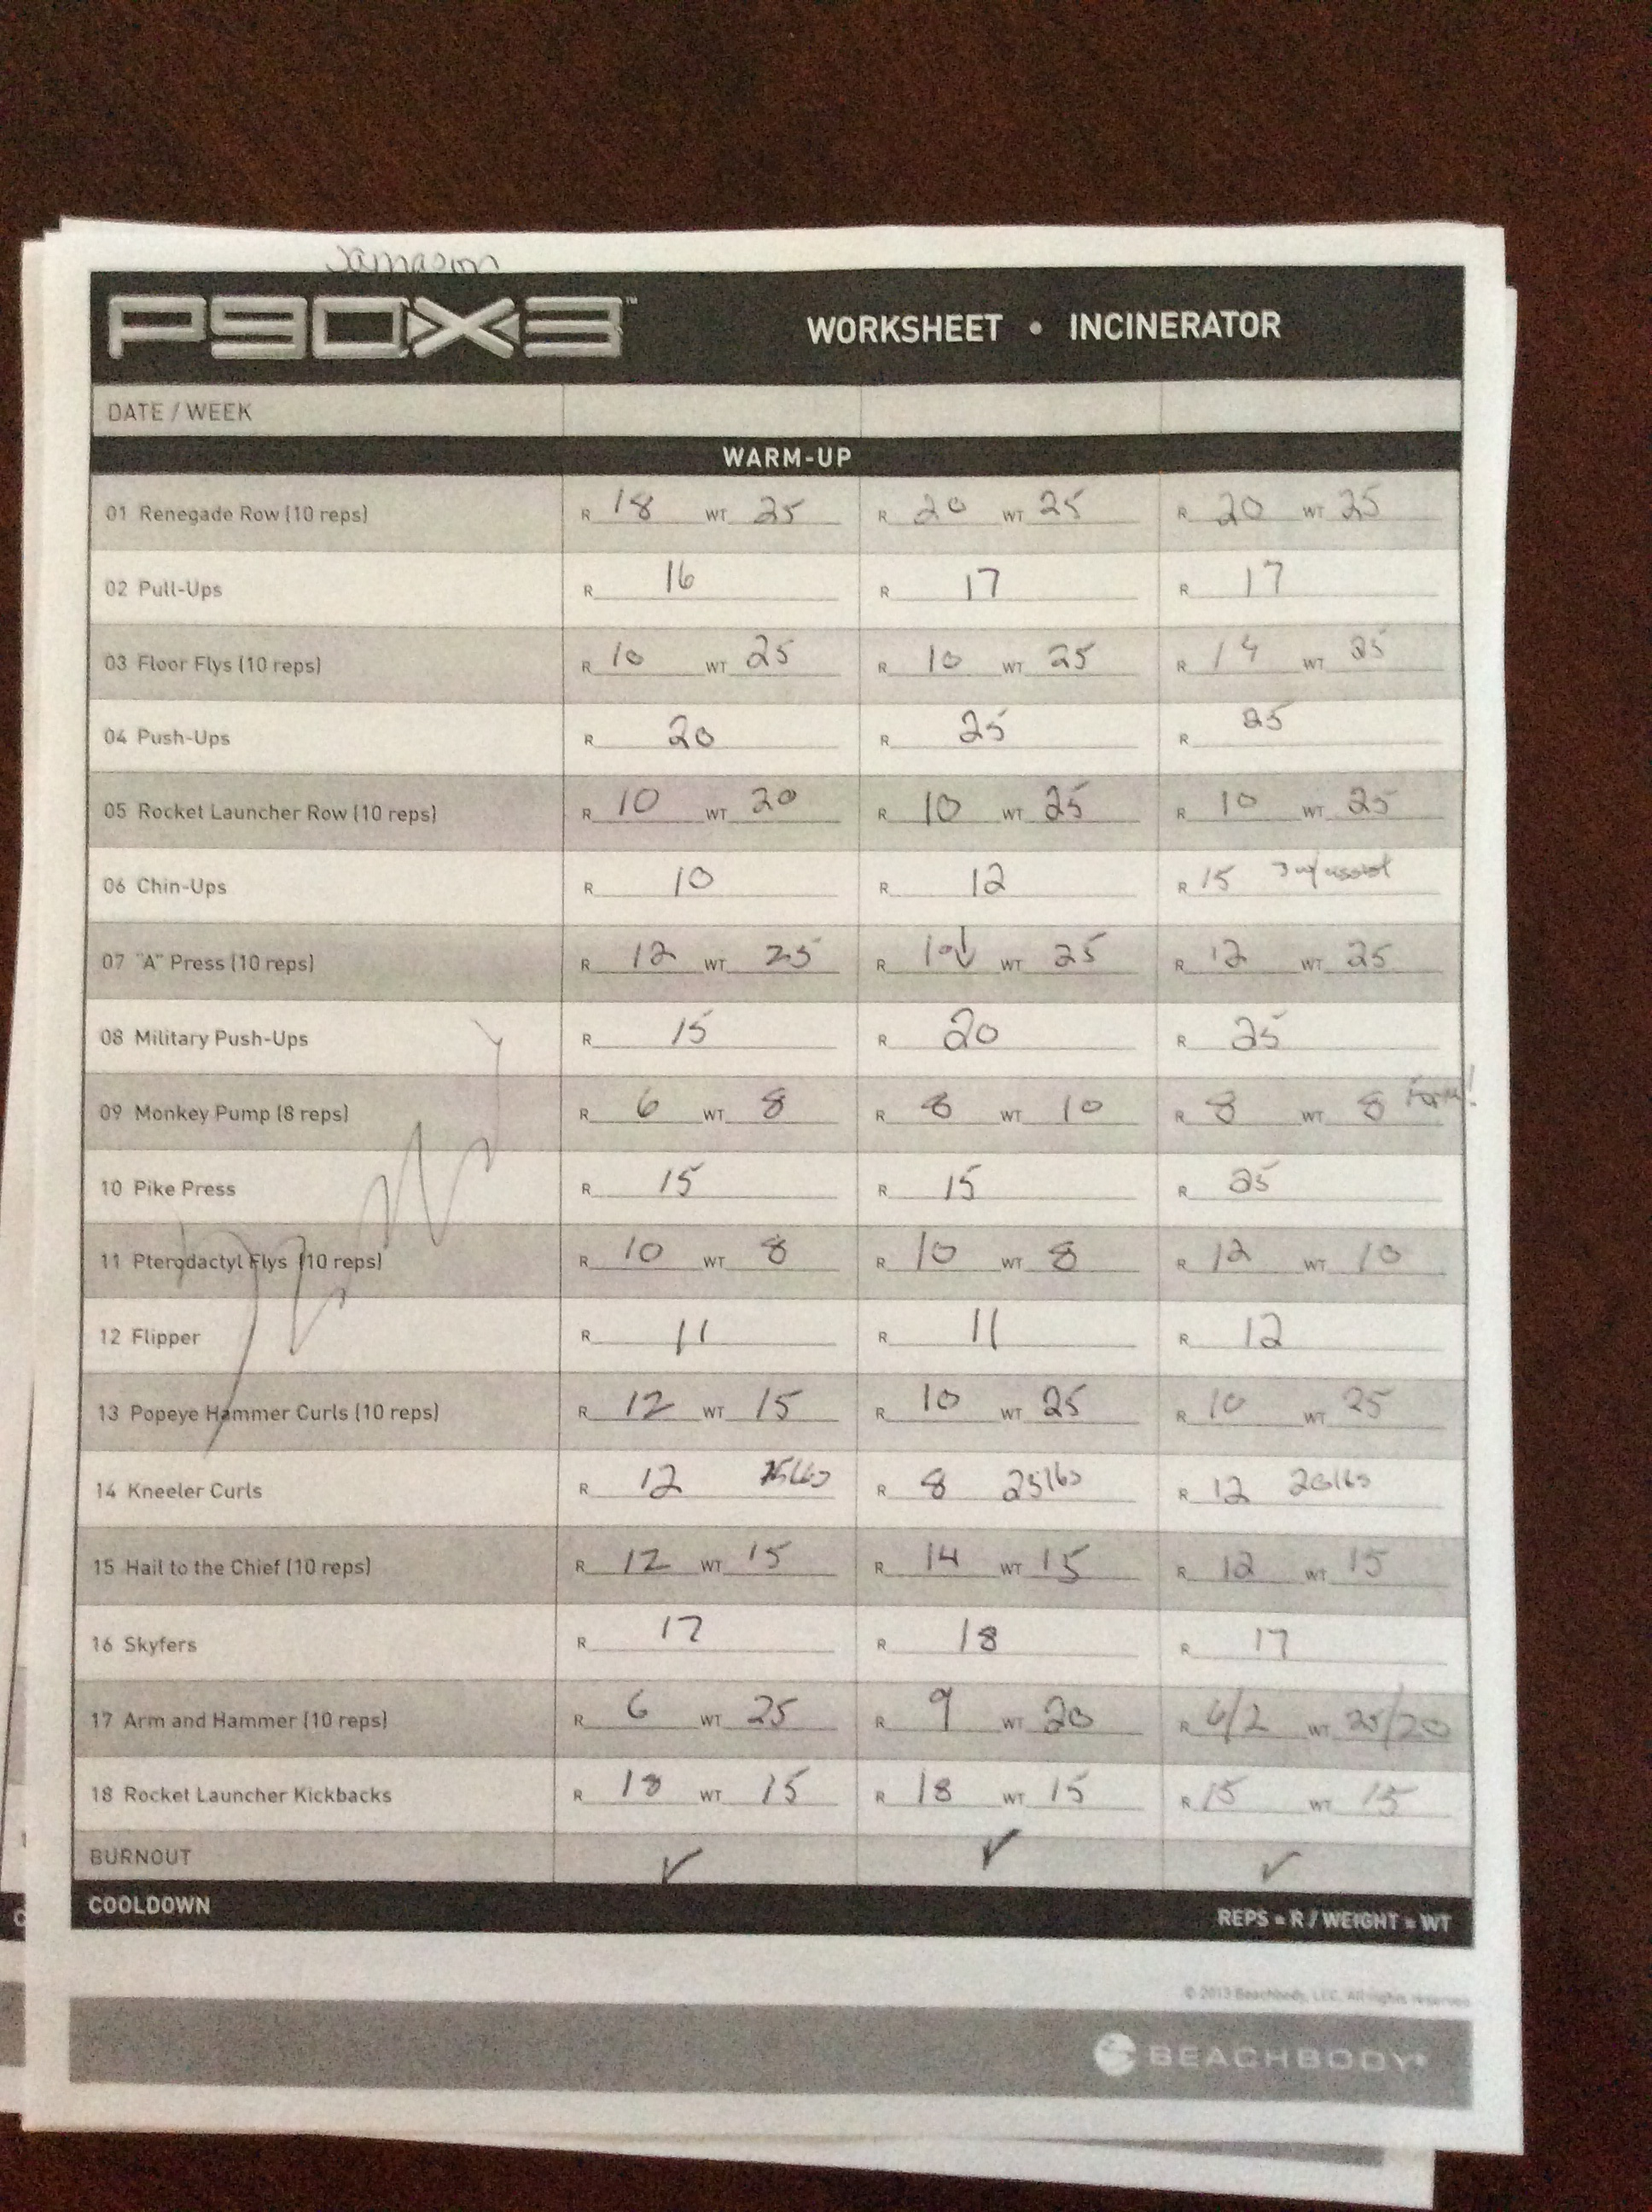 P90x Yoga Exercise List